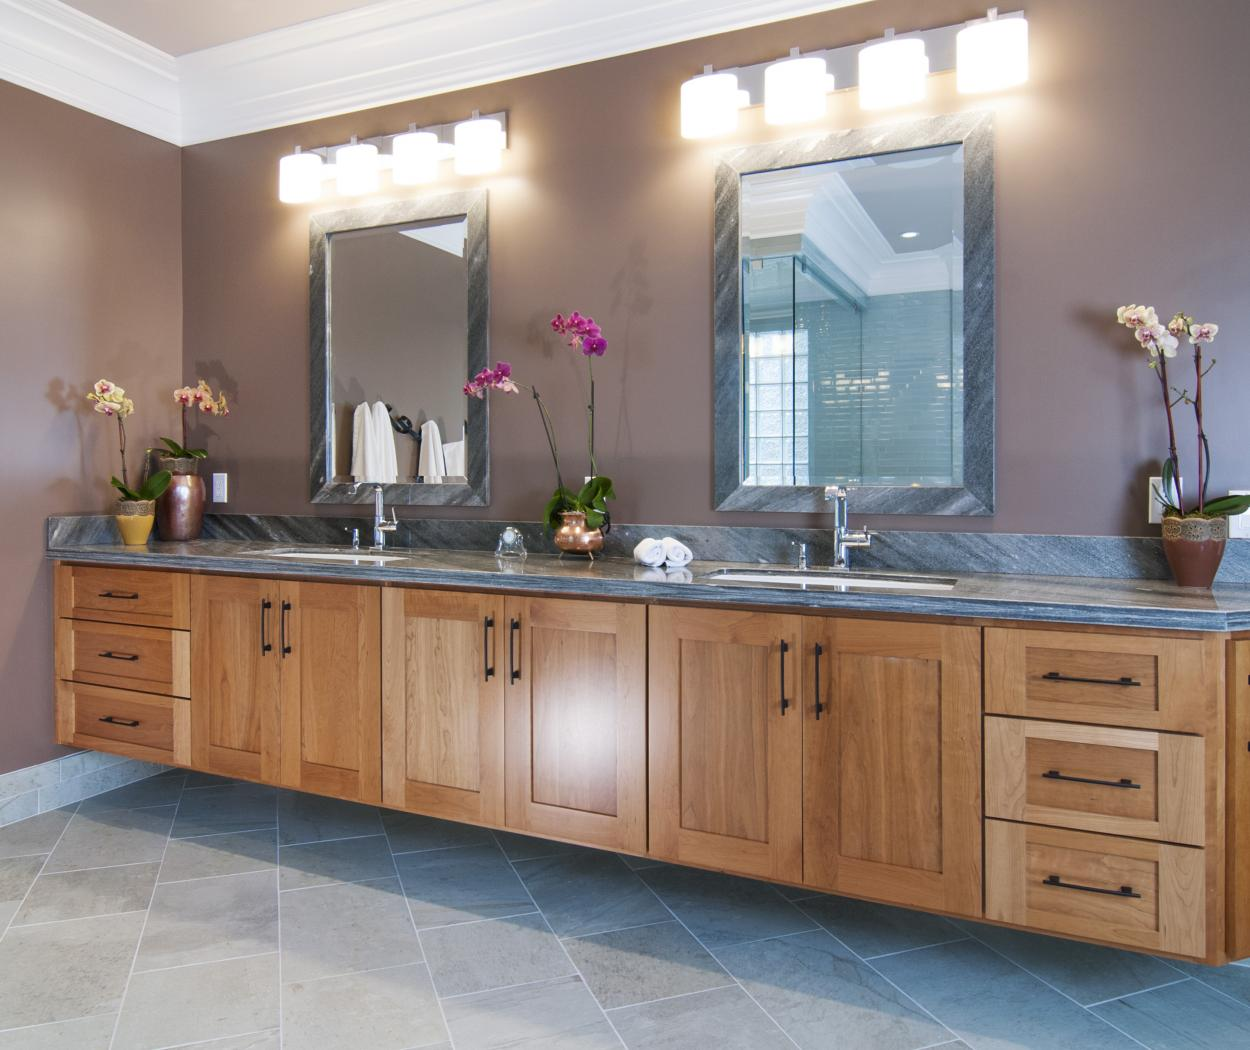 Transitional Cherry, Shaker Style Master Bathroom Vanity with Double Sinks and a Beautiful Marble Countertop